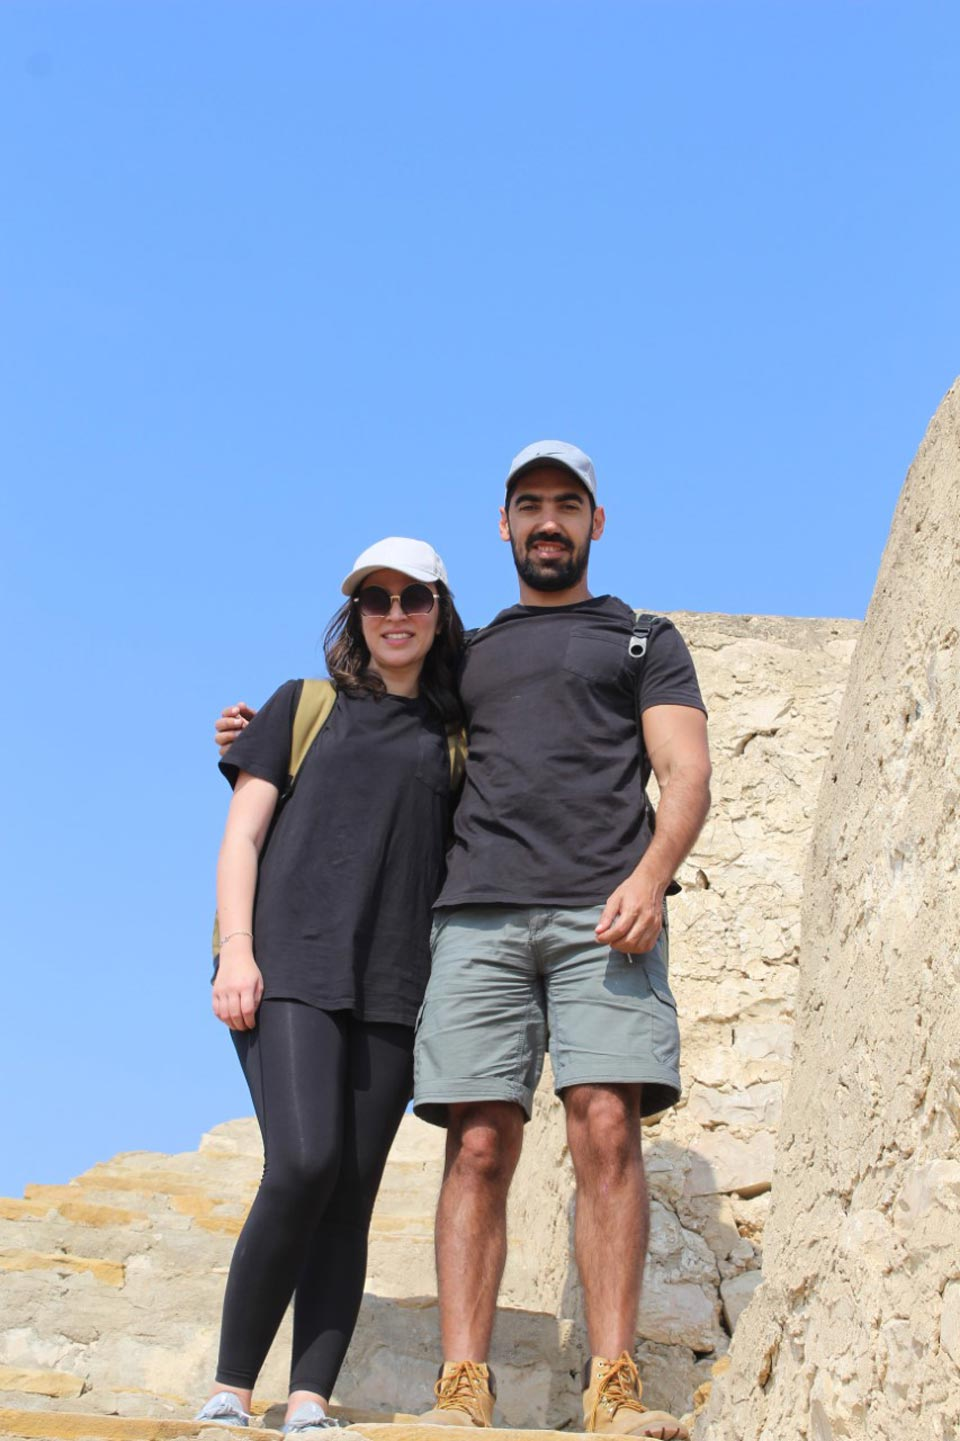 Ms. Emaan from Australia and Mr. Firaz from Syria enjoying on the top of the great wall of Sindh